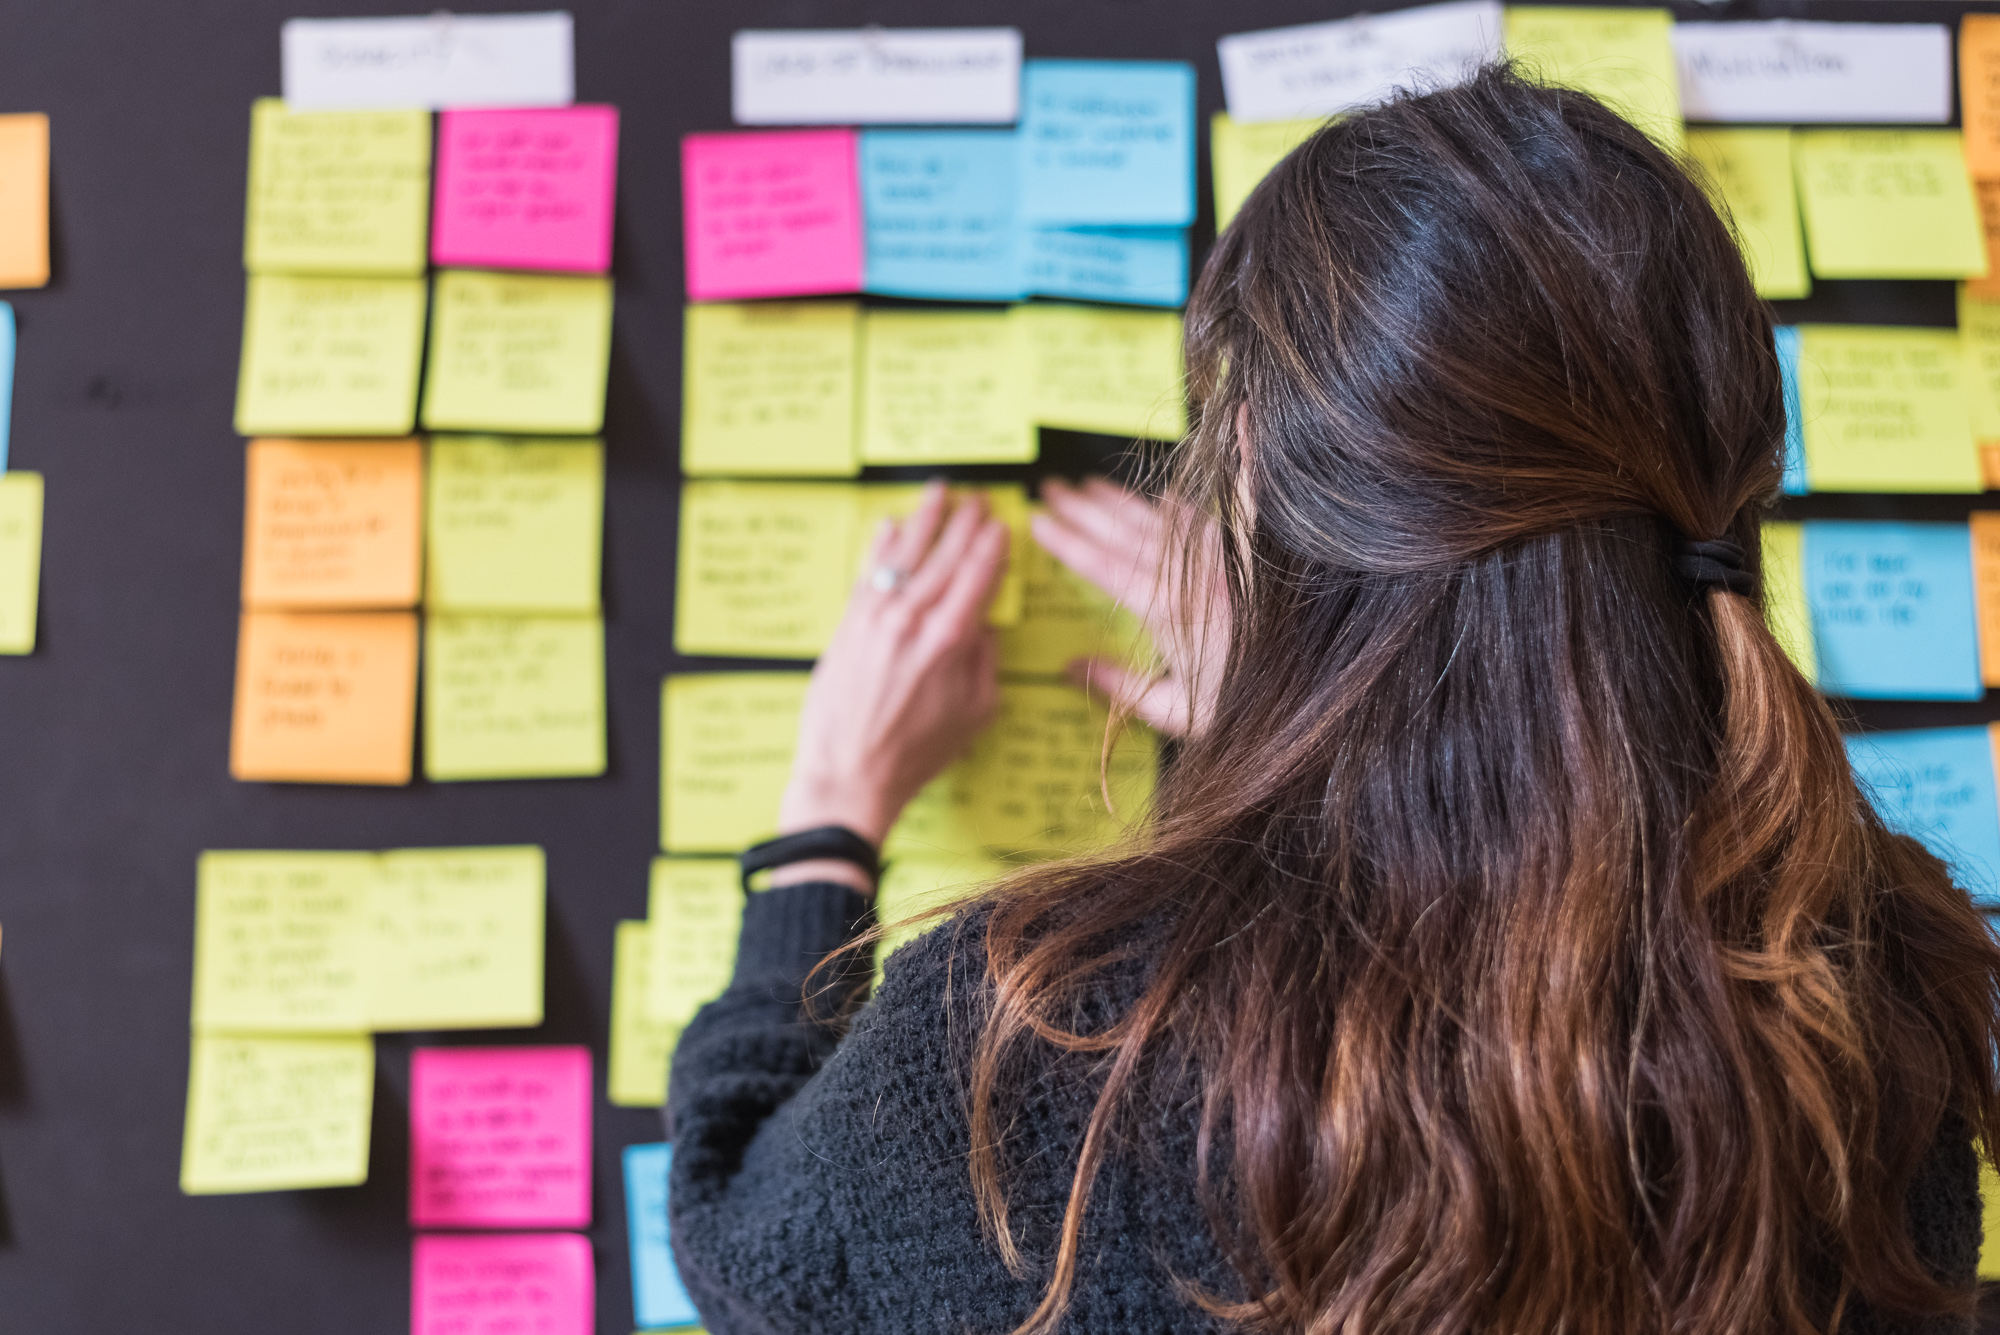 We took the feedback we received from user interviews and did some affinity mapping, which is a method of synthesizing data to look for patterns.